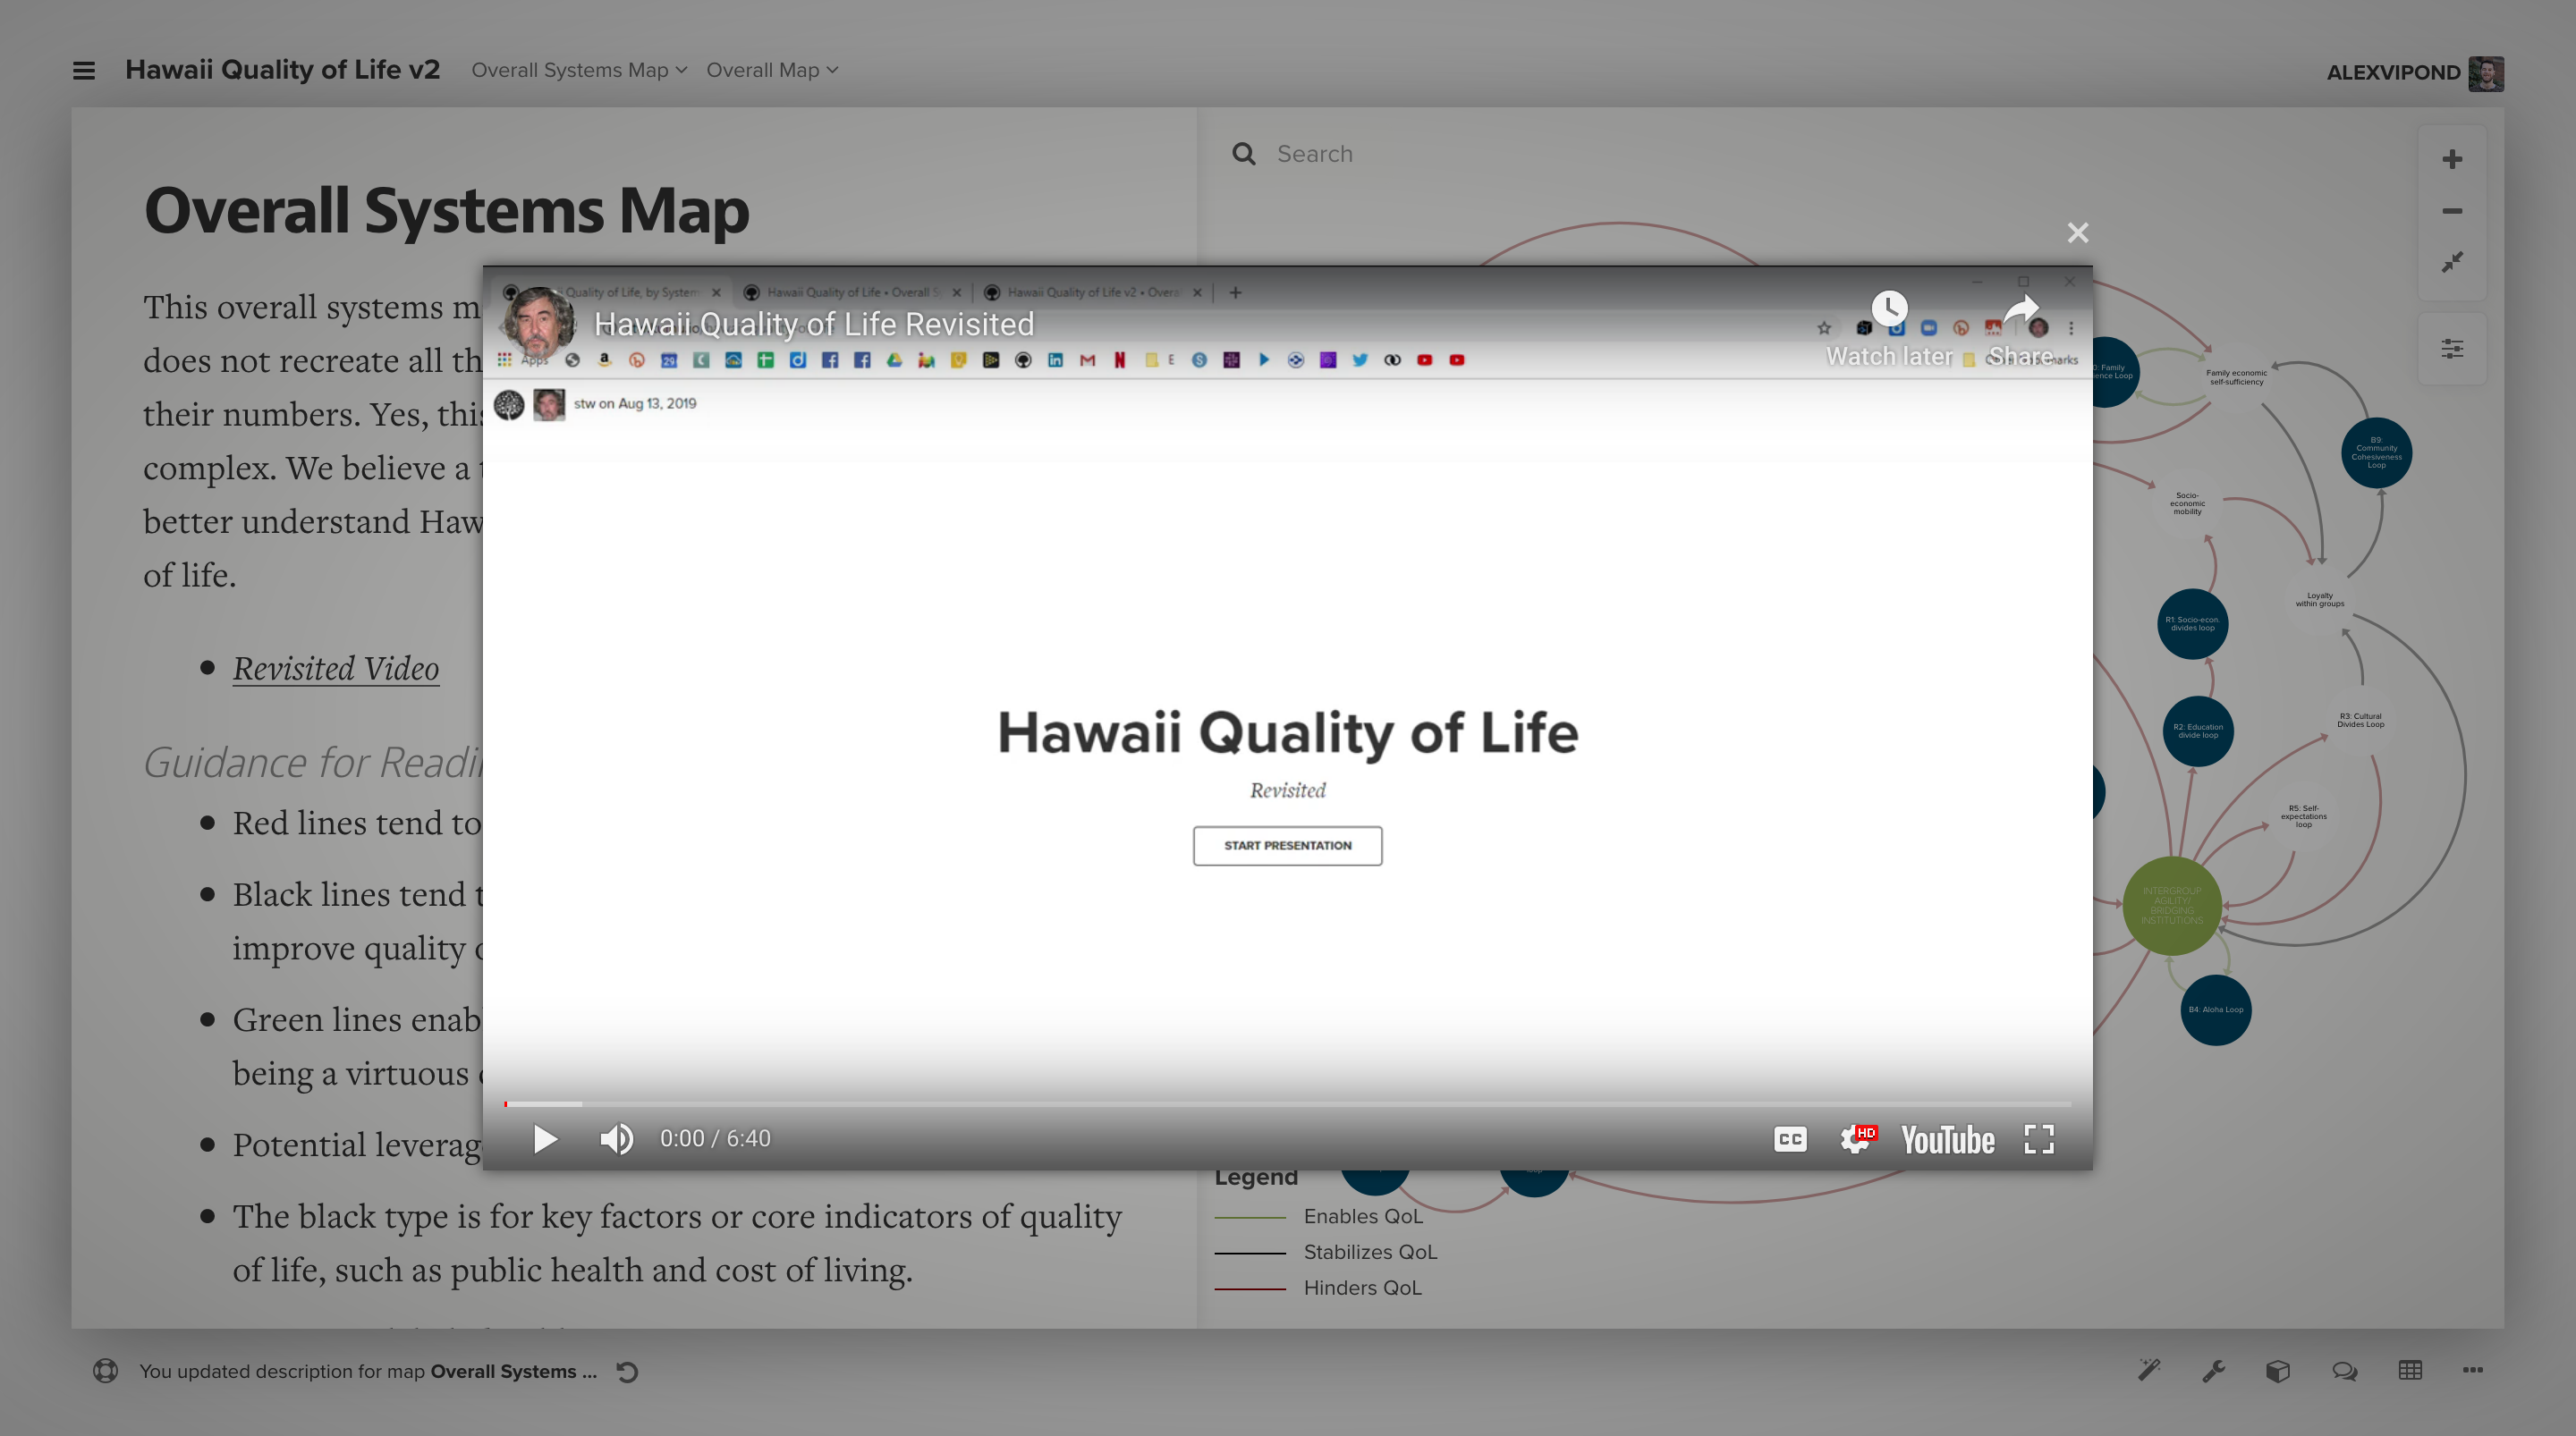 Lightbox showing a YouTube video in Kumu